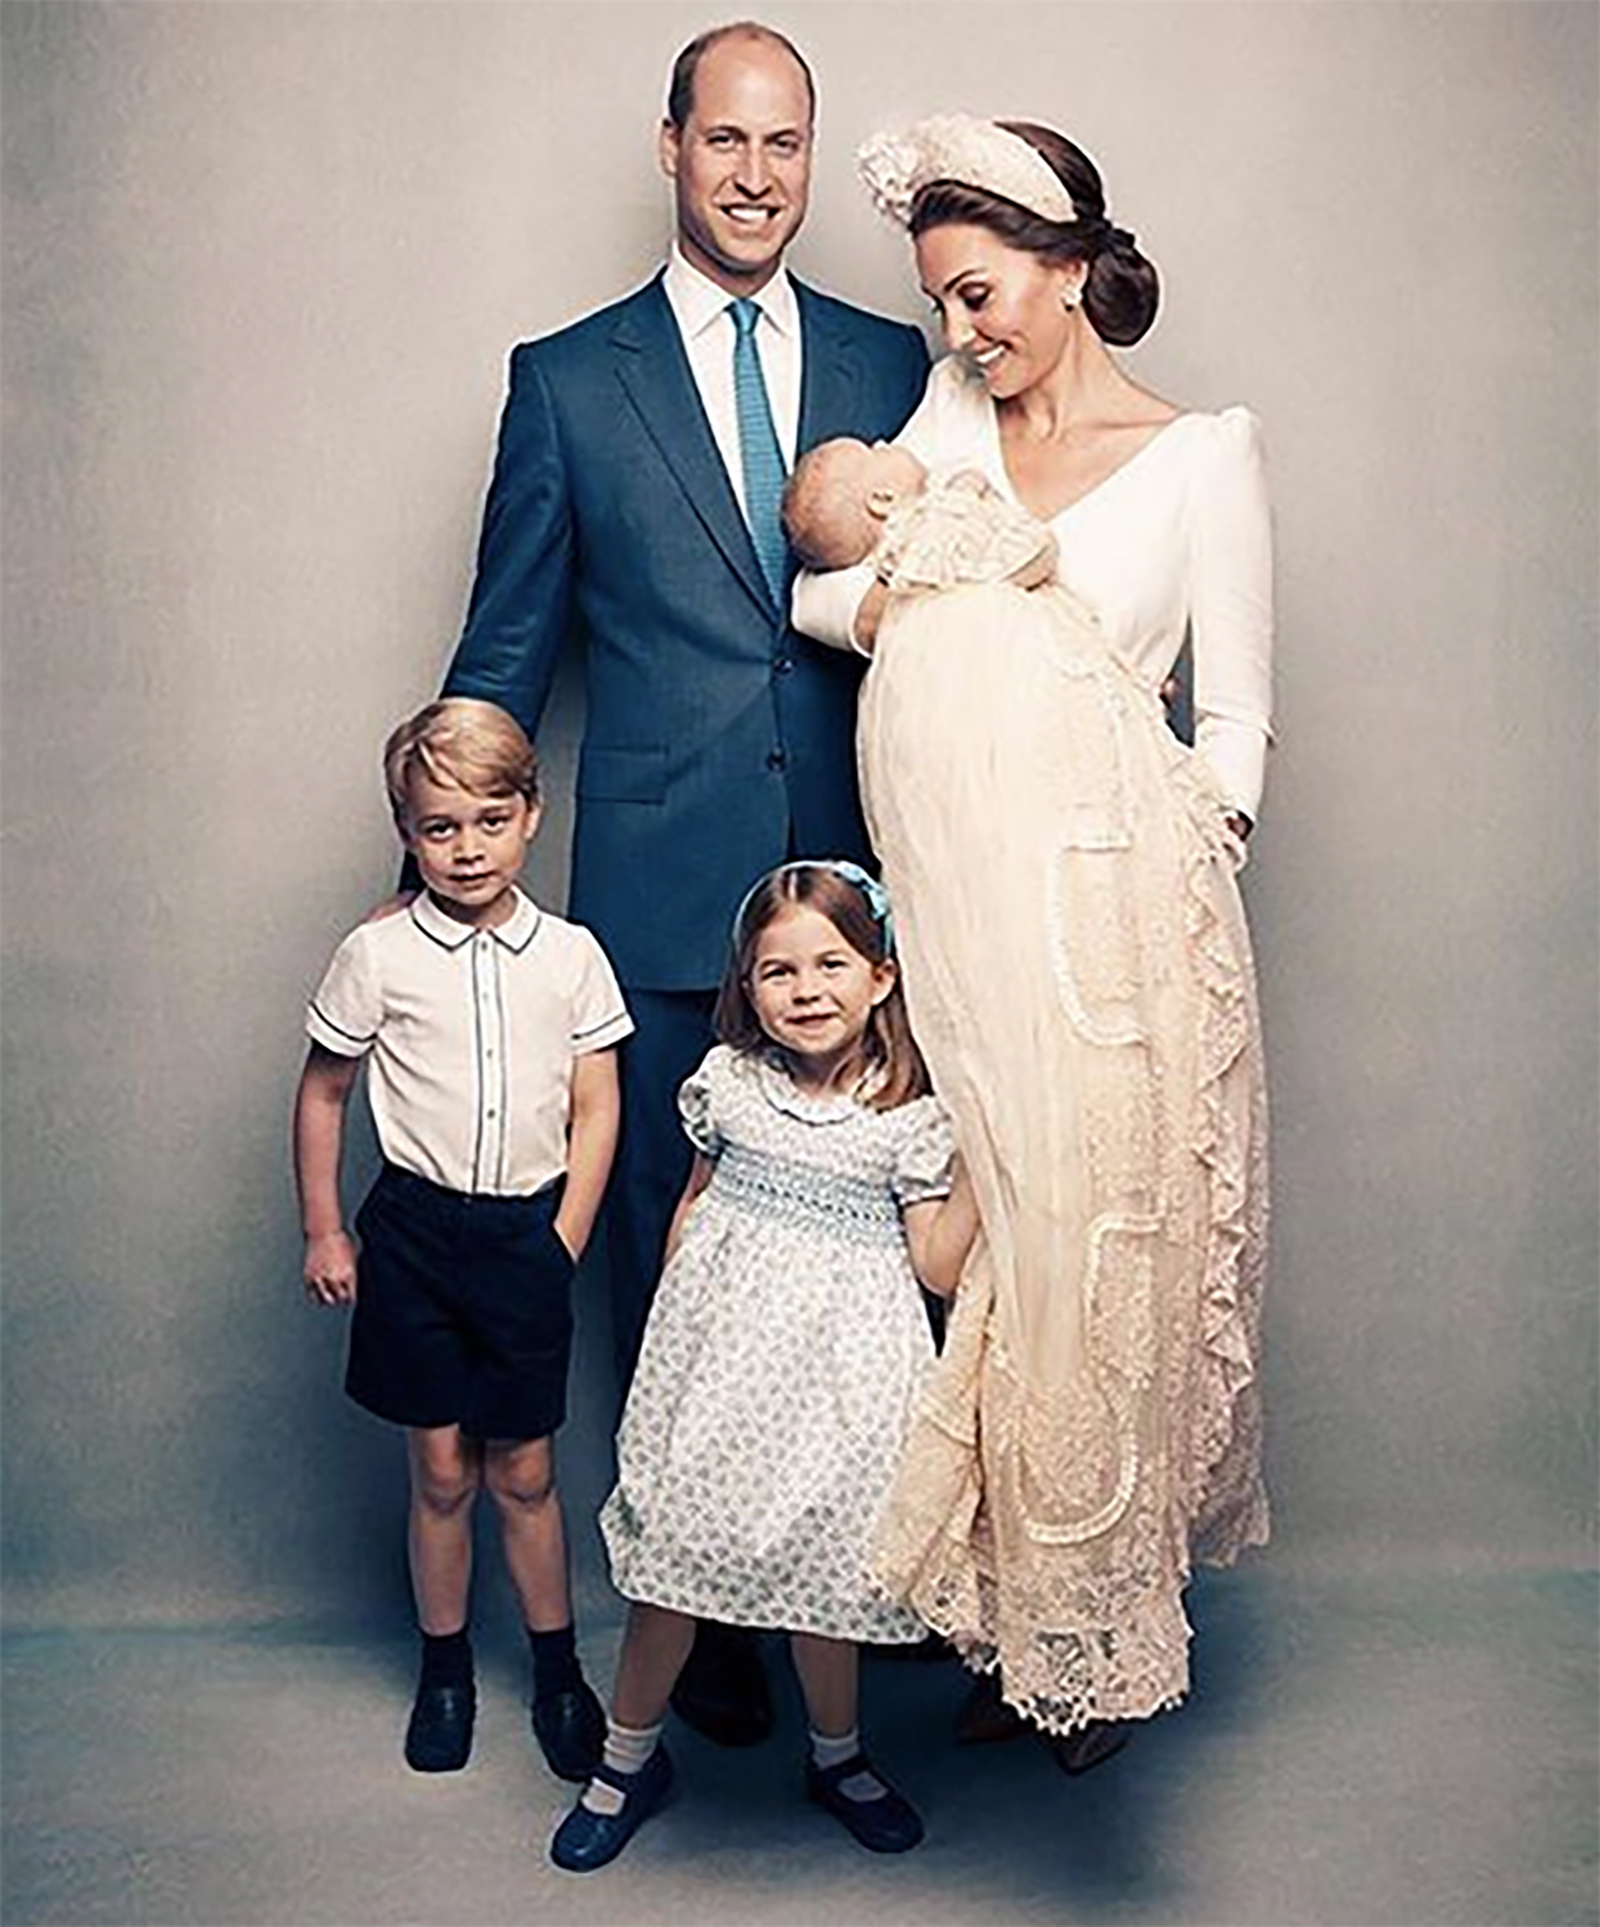 Príncipe George, príncipe William, princesa Kate, Princesa Charlotte, príncipe Louis